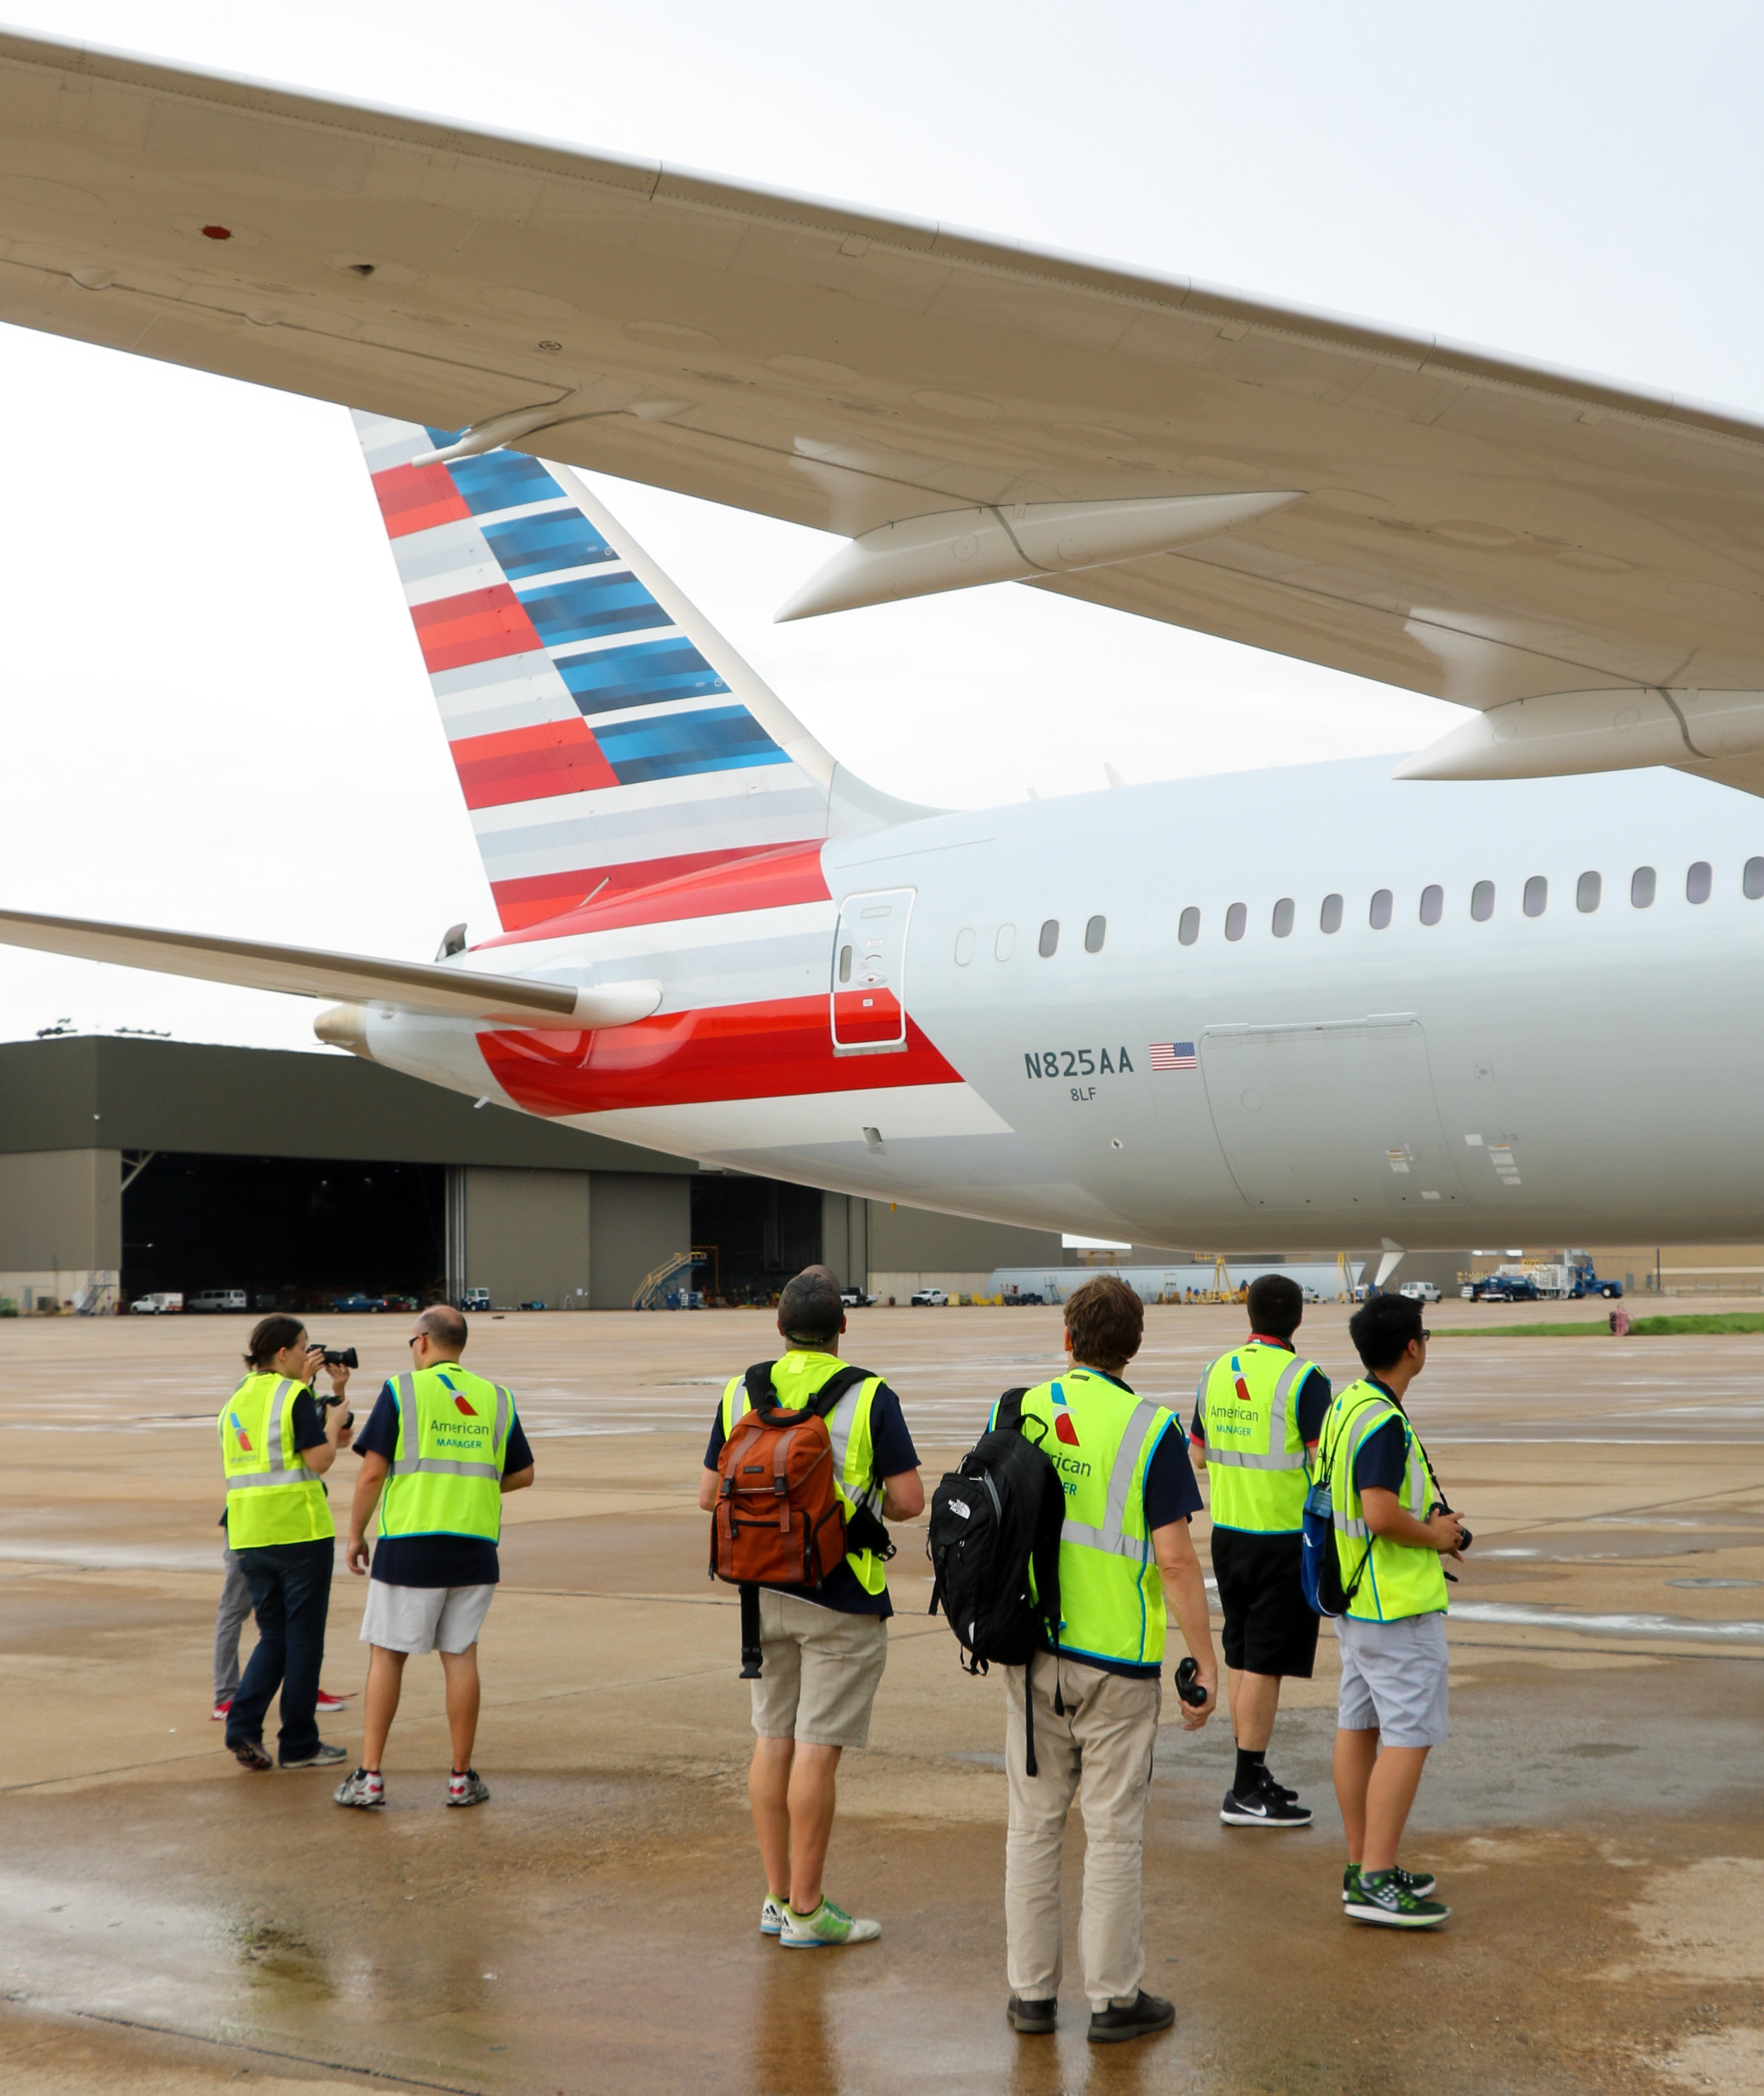 Standing under the wing, the participants in DFW's AAviationDay collectively admire an American Airlines Boeing 787-9.